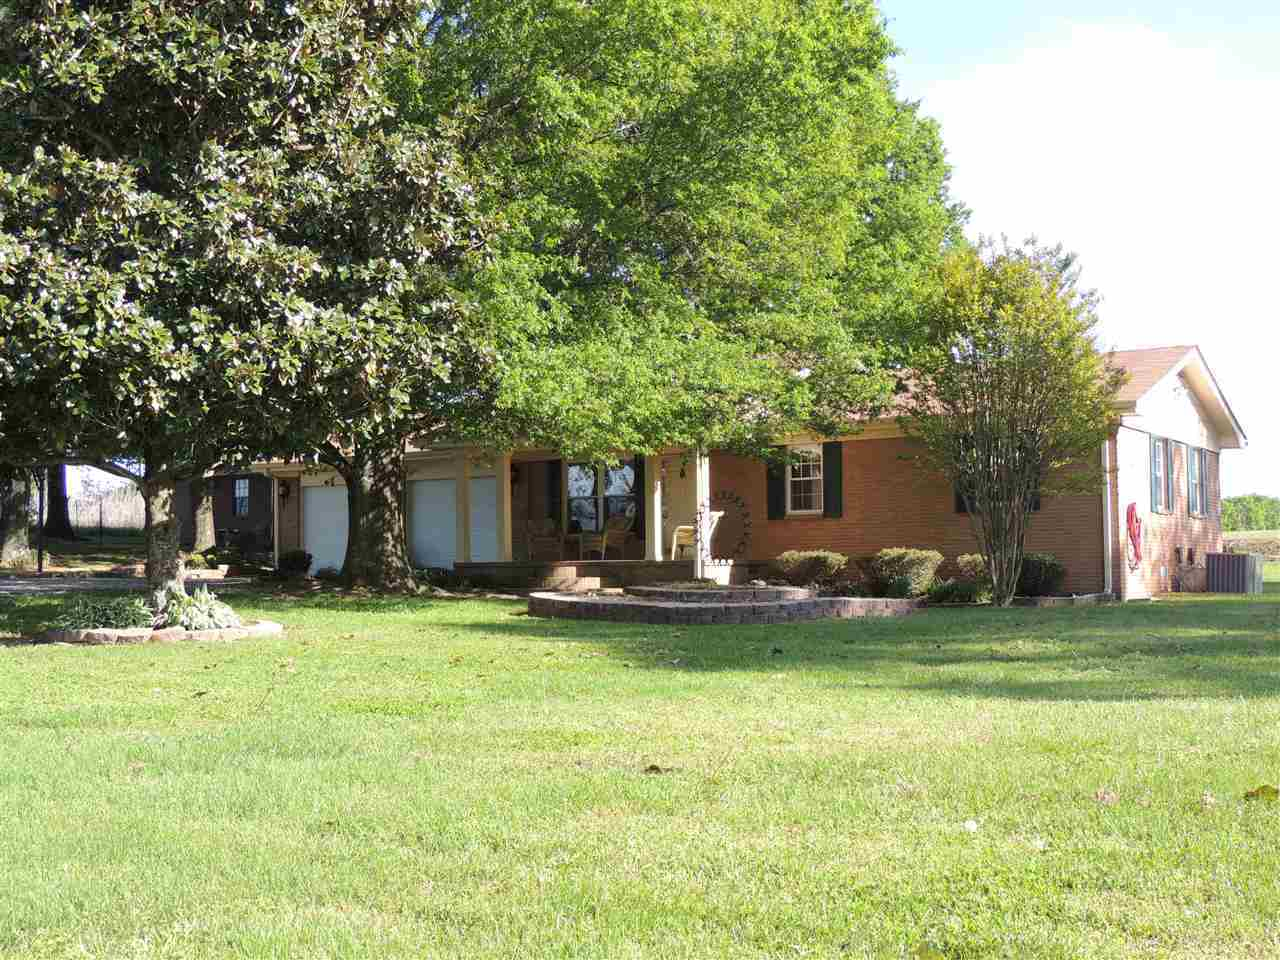 3137 Locust Grove Road,Newbern,Tennessee 38059,3 Bedrooms Bedrooms,2 BathroomsBathrooms,Residential,3137 Locust Grove Road,180460